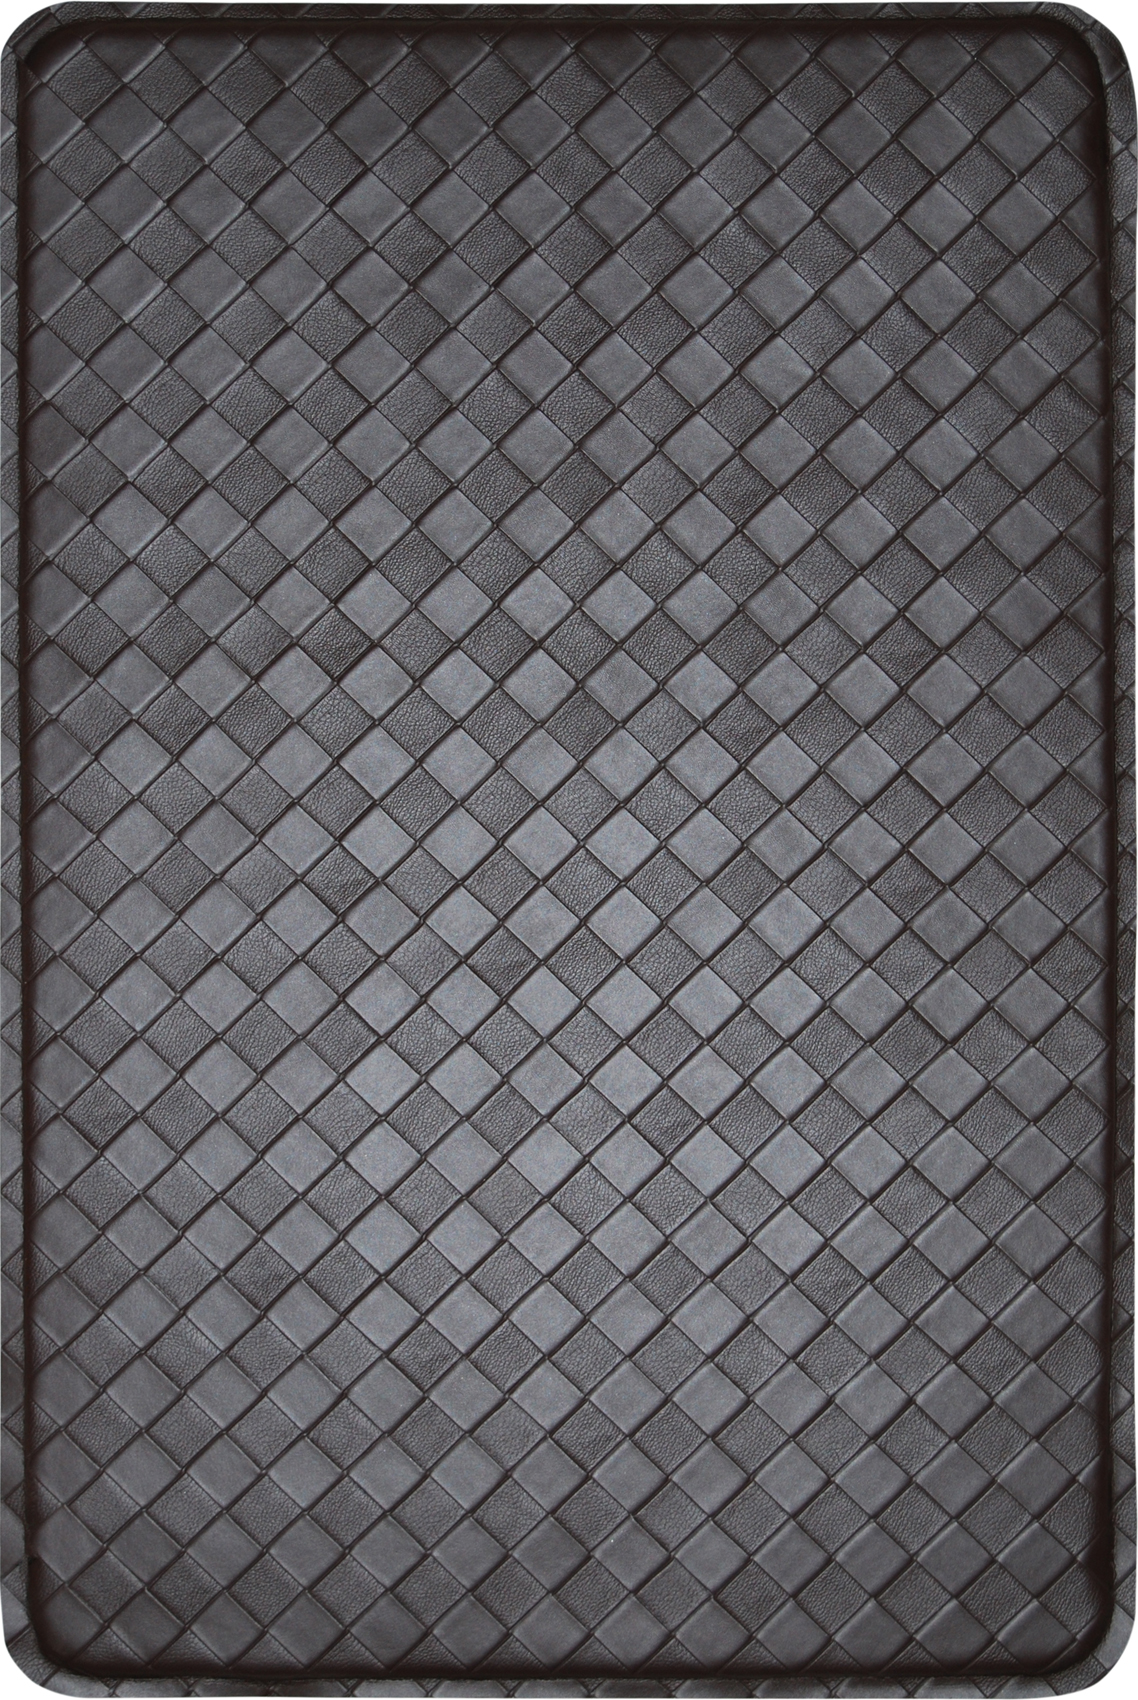 Kitchen Floor Mats Uk Modern Indoor Cushion Kitchen Rug Anti Fatigue Floor Mat Actual